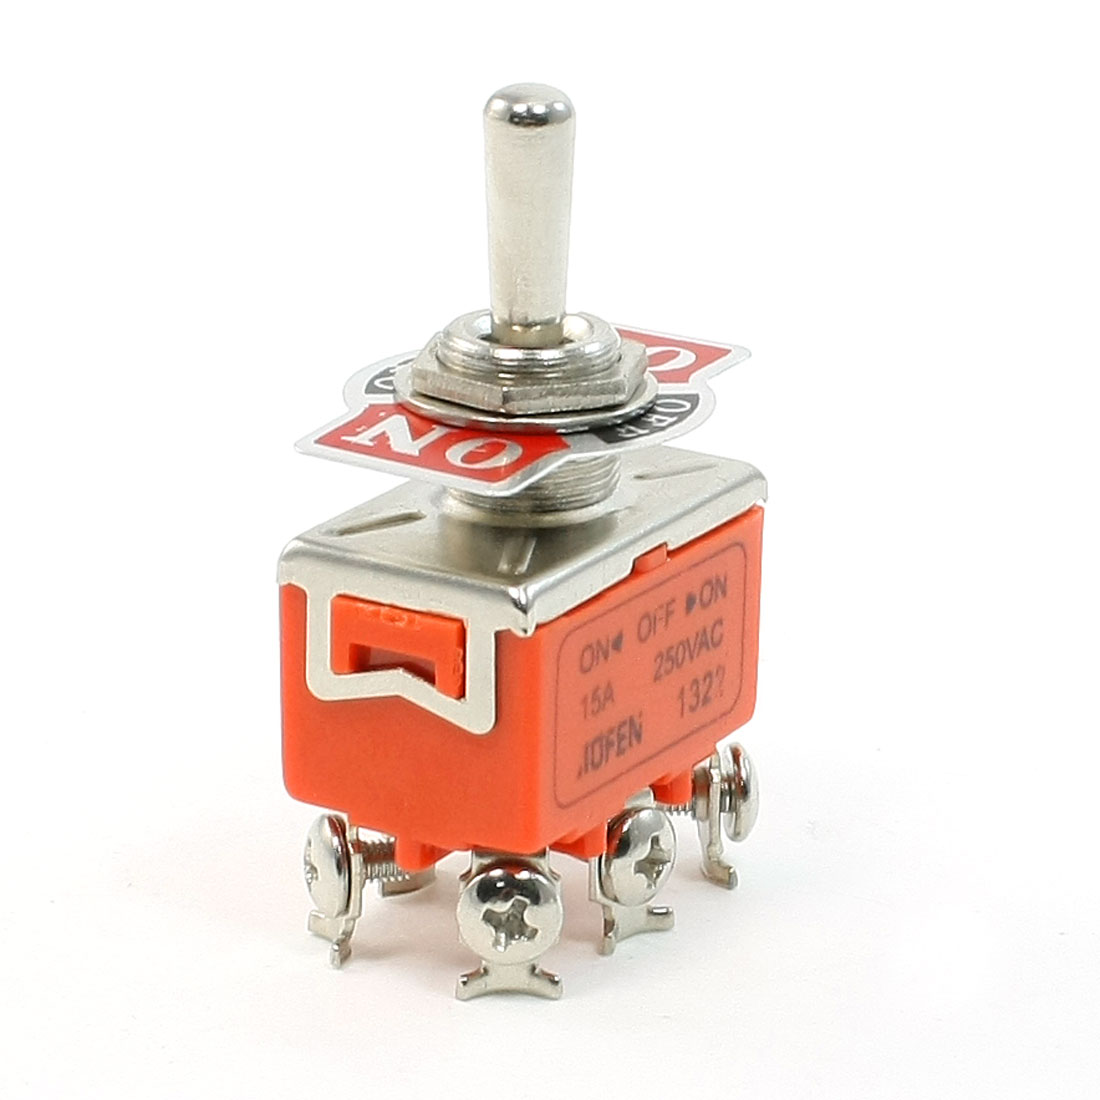 AC 250V/15A On/Off/On 3 Position 6 Terminals DPDT Toggle Switch